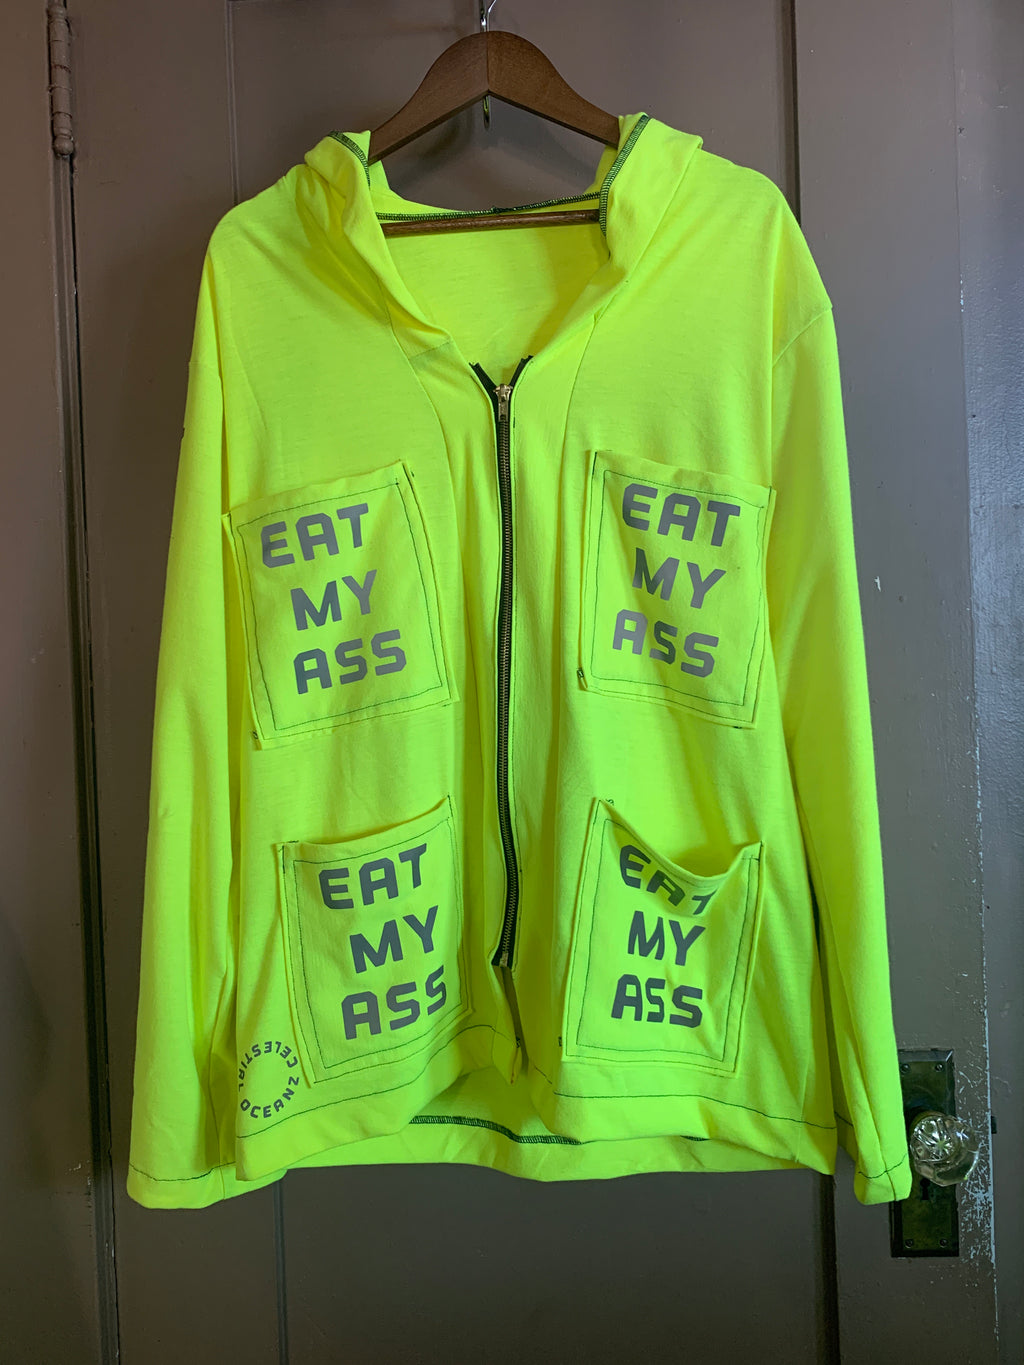 1/1 Neon Hemp Eat My Ass Zip Up